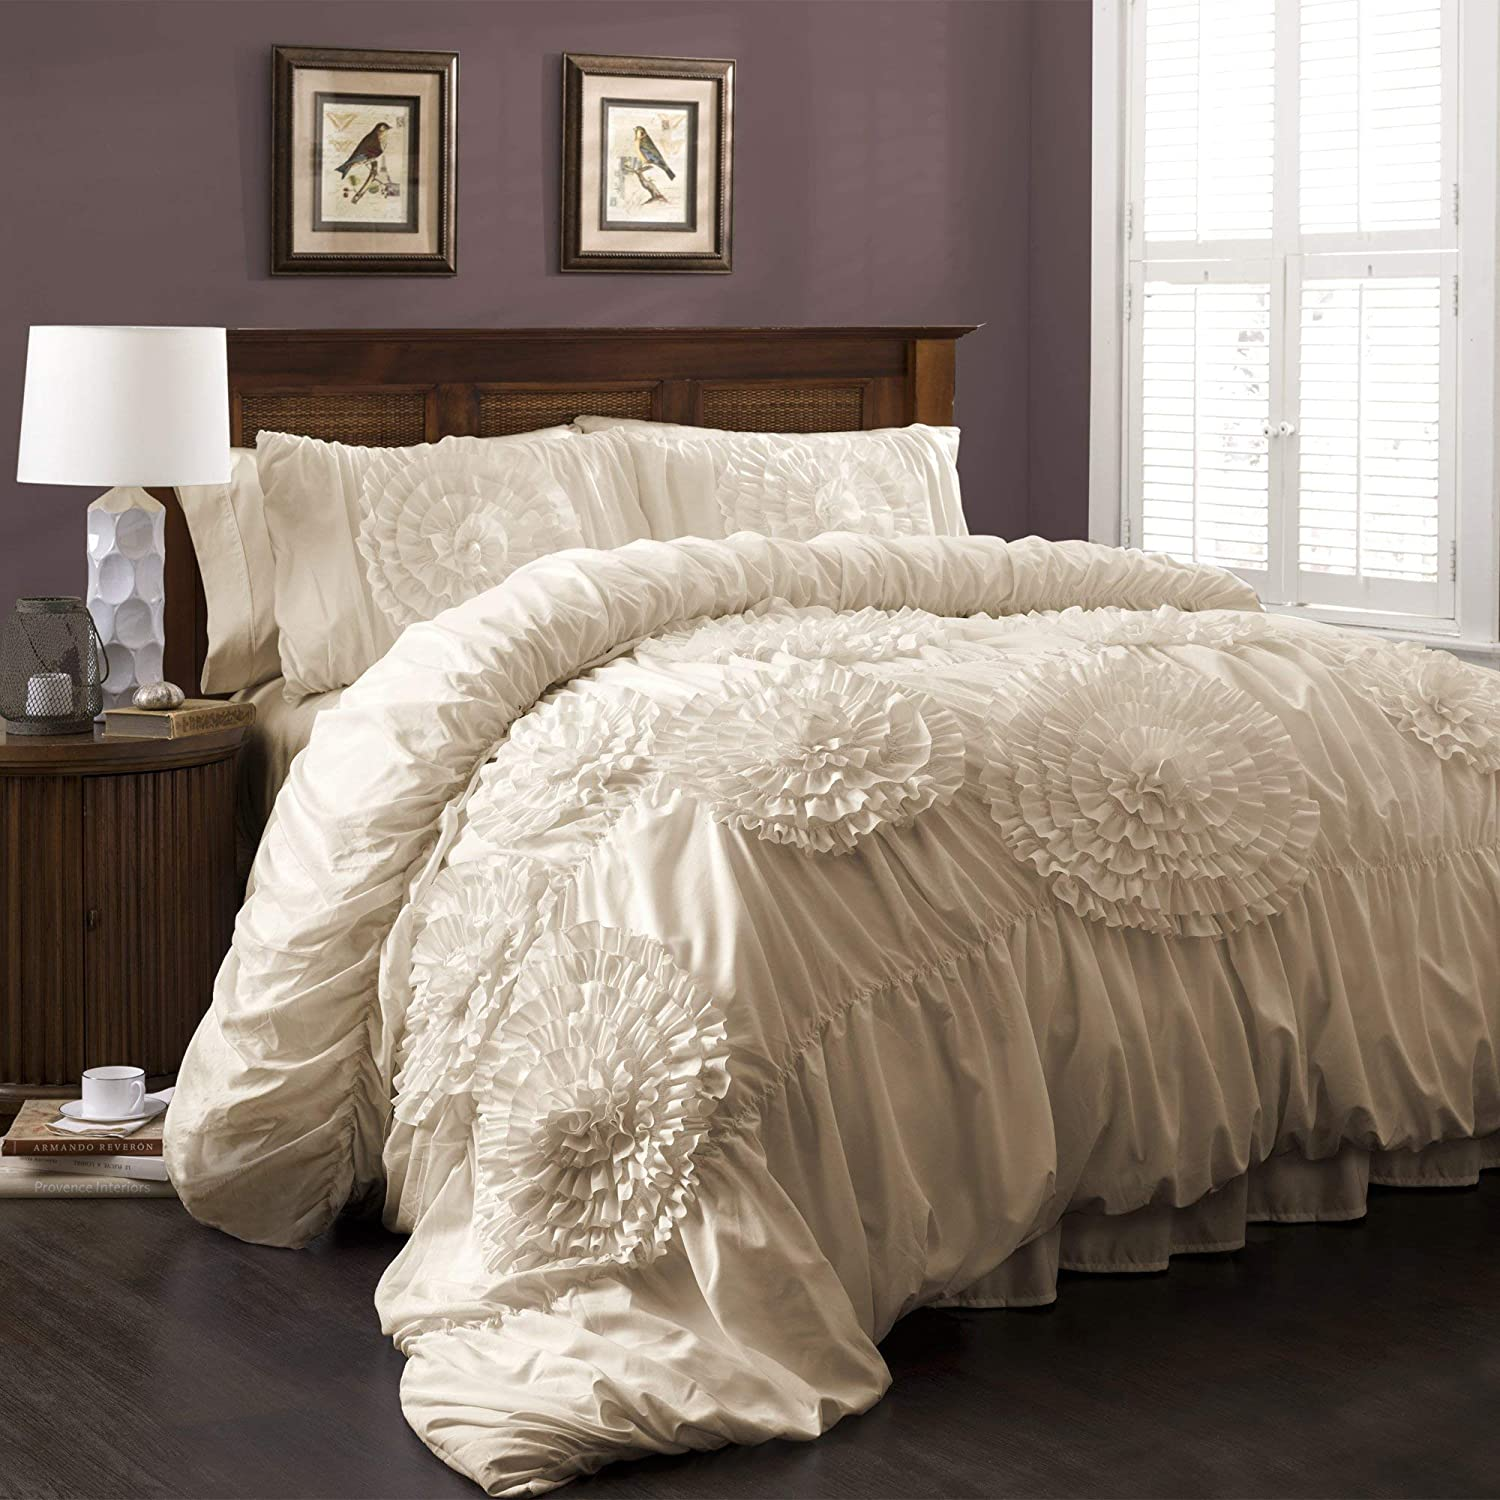 Lush Decor Serena Comforter Ivory Ruched Flower 3 Piece Set King (Renewed)